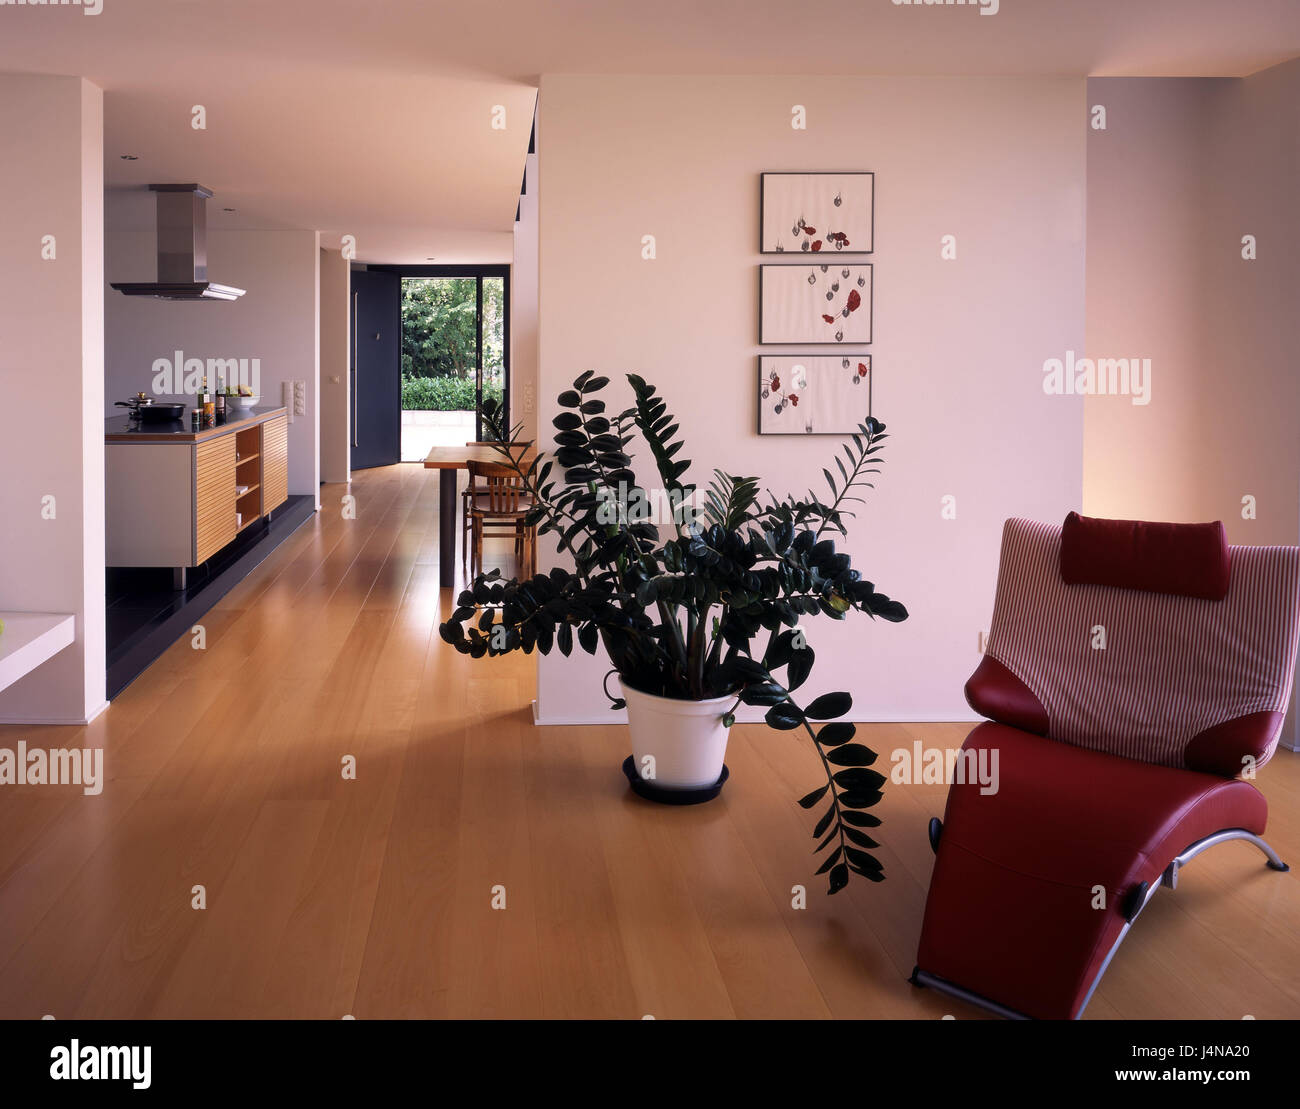 ... Armchair, Indoor Plant, Passage, Cuisine, Terrace Door, Flat, Living,  House, Ground Floor, Inside, Detail, Setup, St. Of Furniture, Couch, Seat  Couch, ...